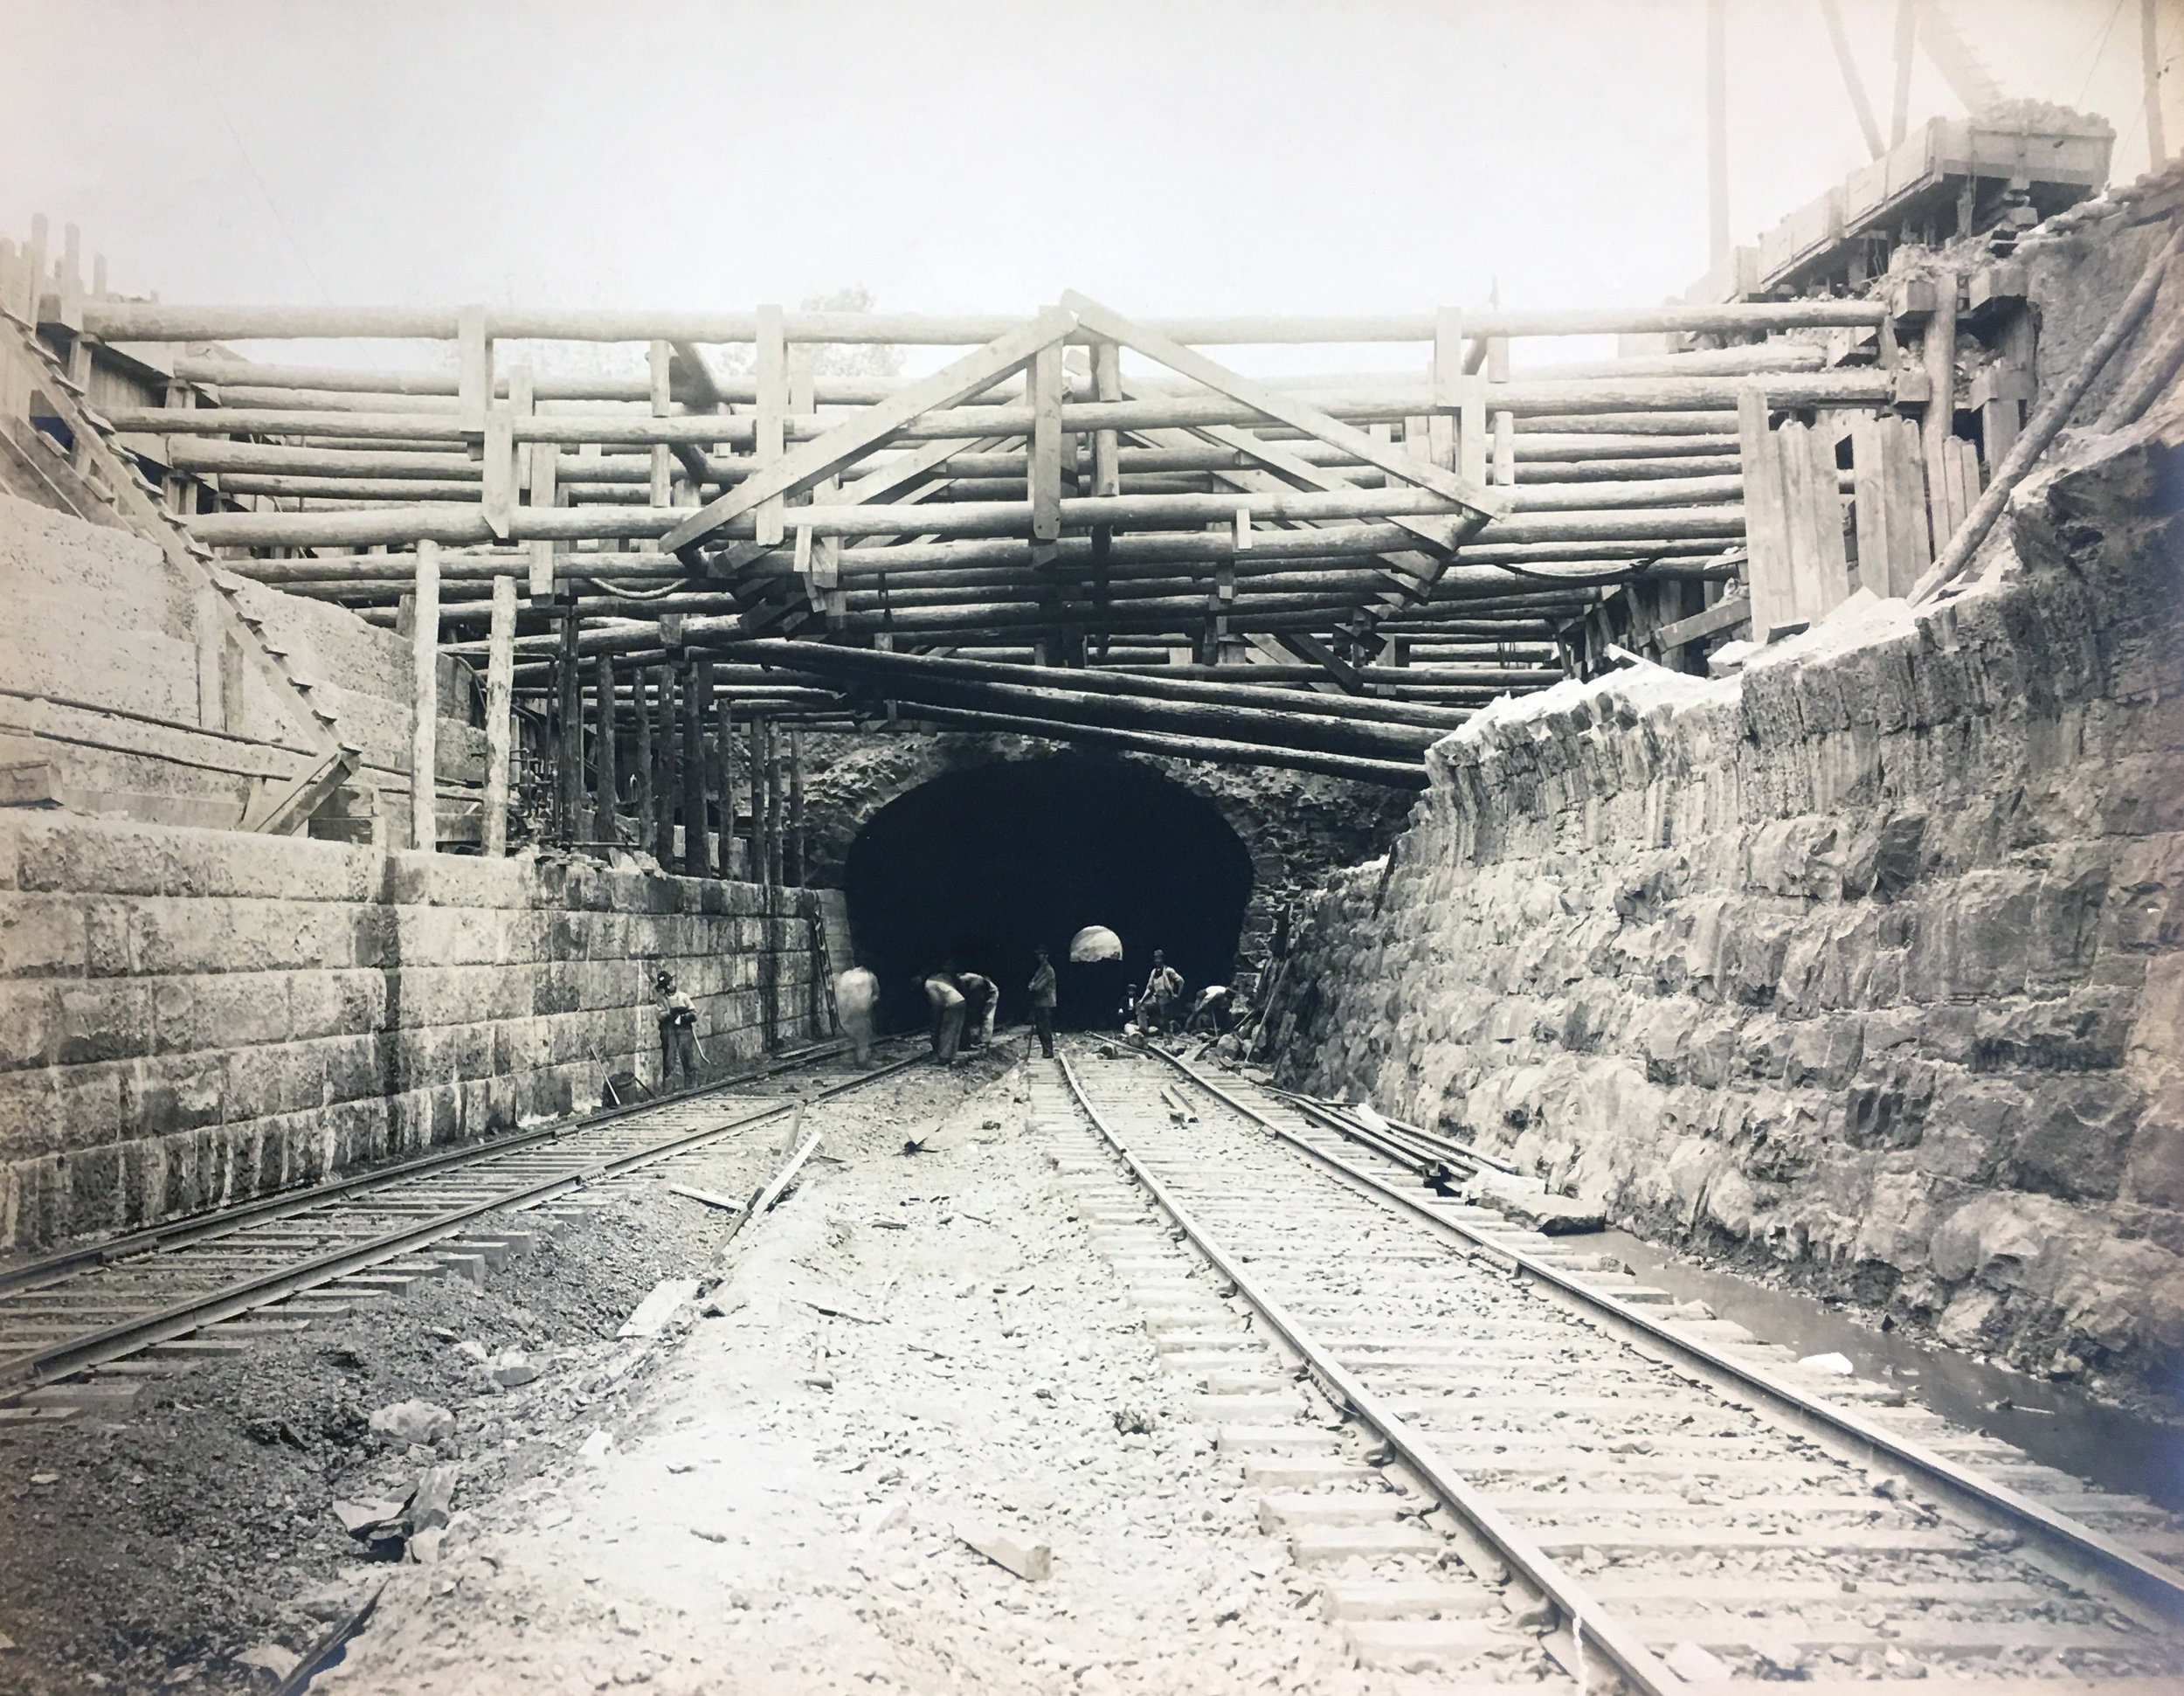 Workers near completion of the Virginia Avenue Tunnel circa 1906. Photo: Library of Congress Prints and Photographs Division/Public Domain